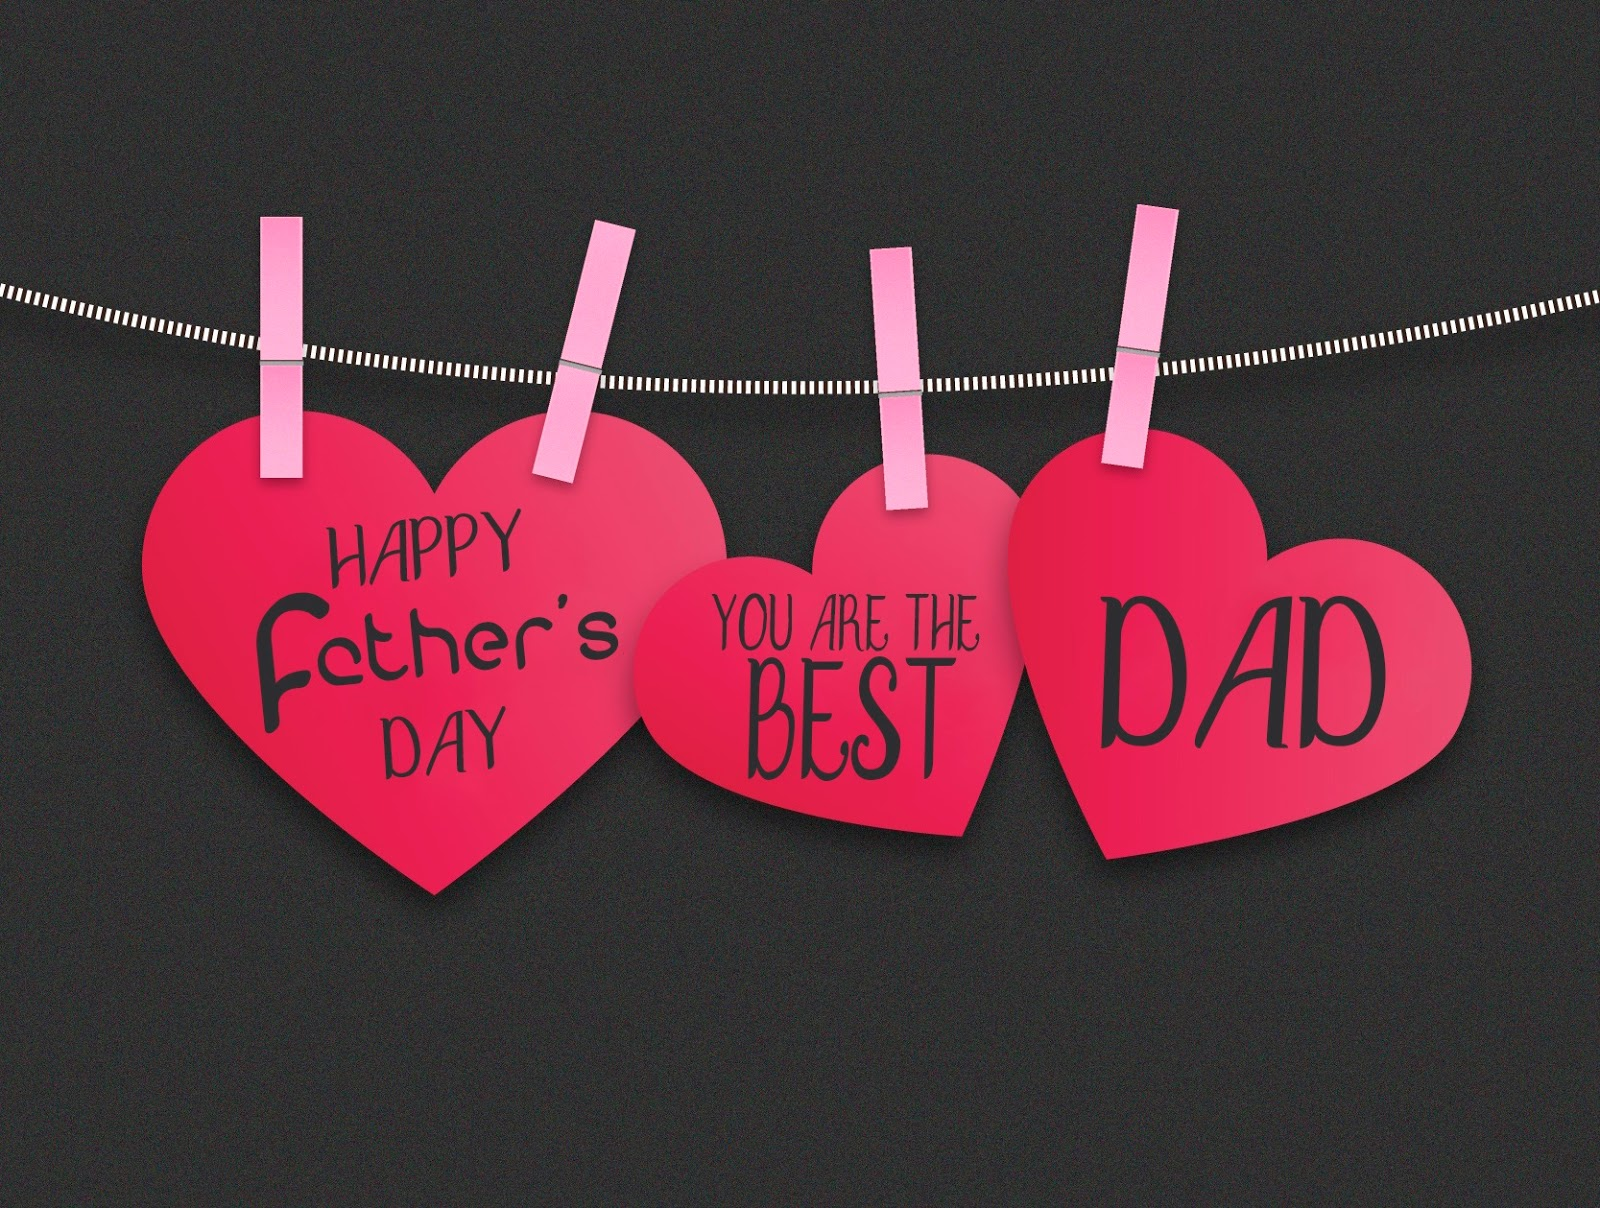 Happy Fathers Day 2017 HD Images Pictures Photos Greetings Wallpapers Free Download